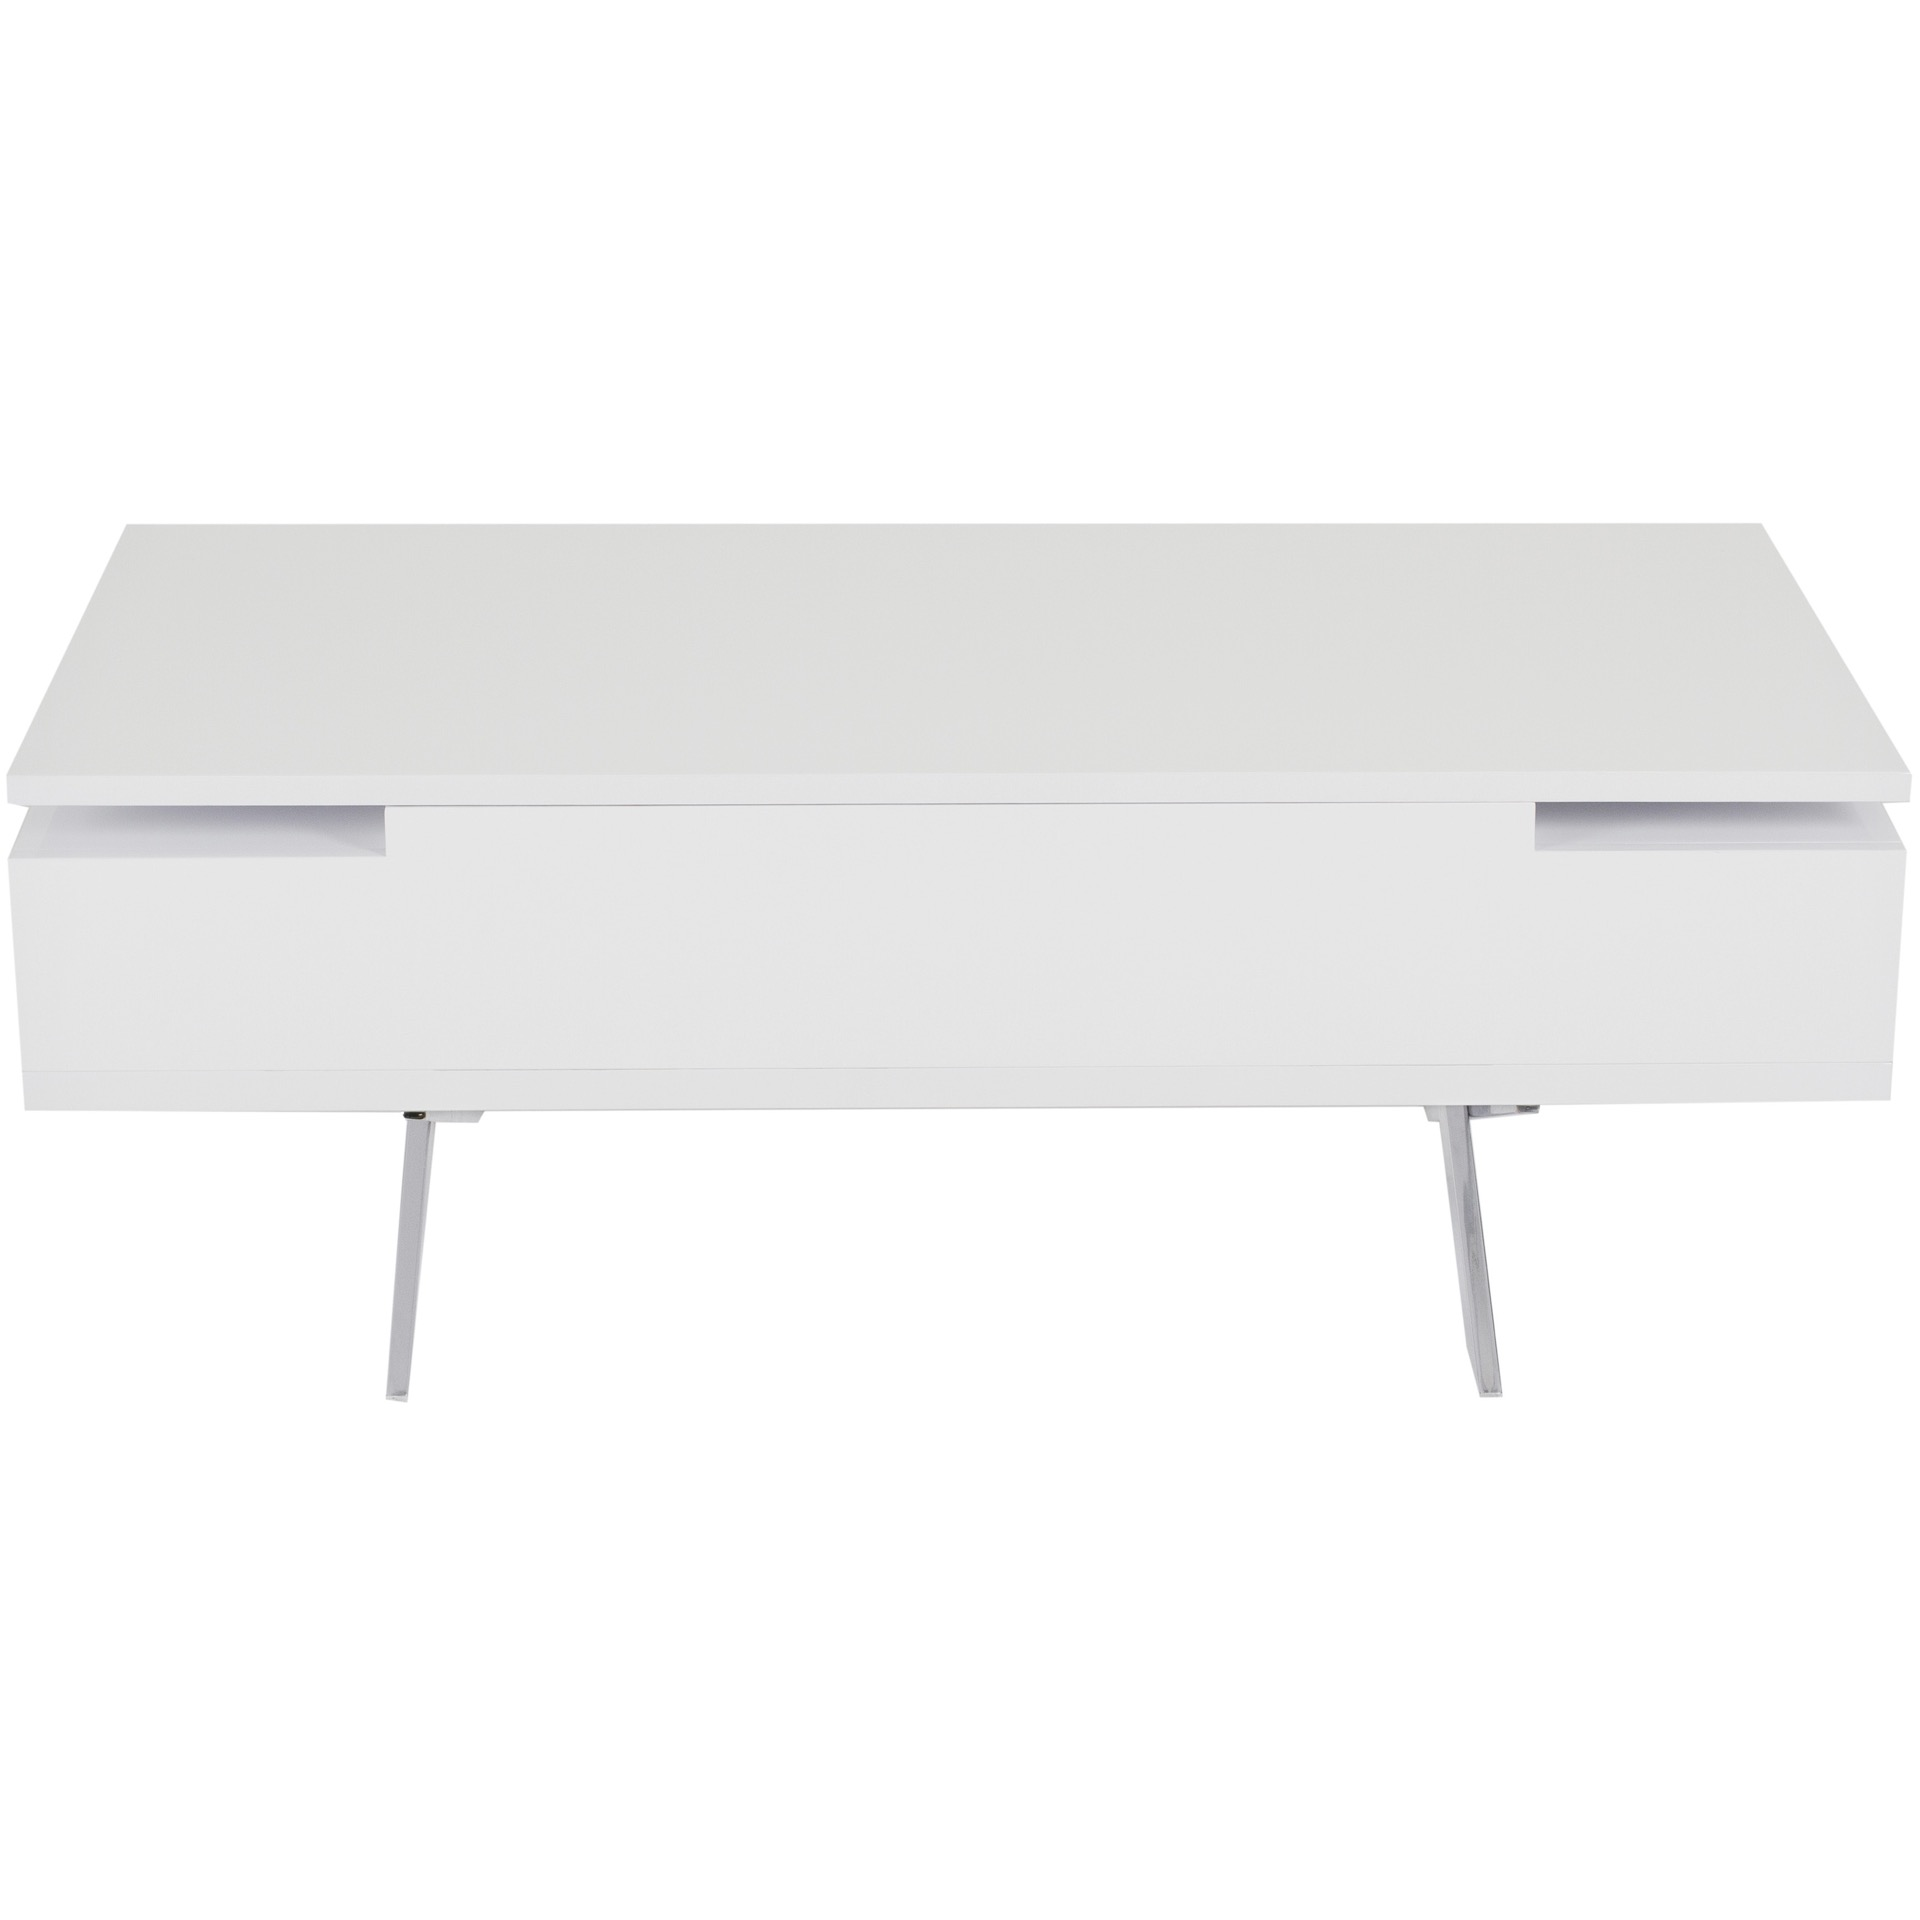 Stelar White Lacquer High Gloss Lift Top Rectangular Coffee Table Mix